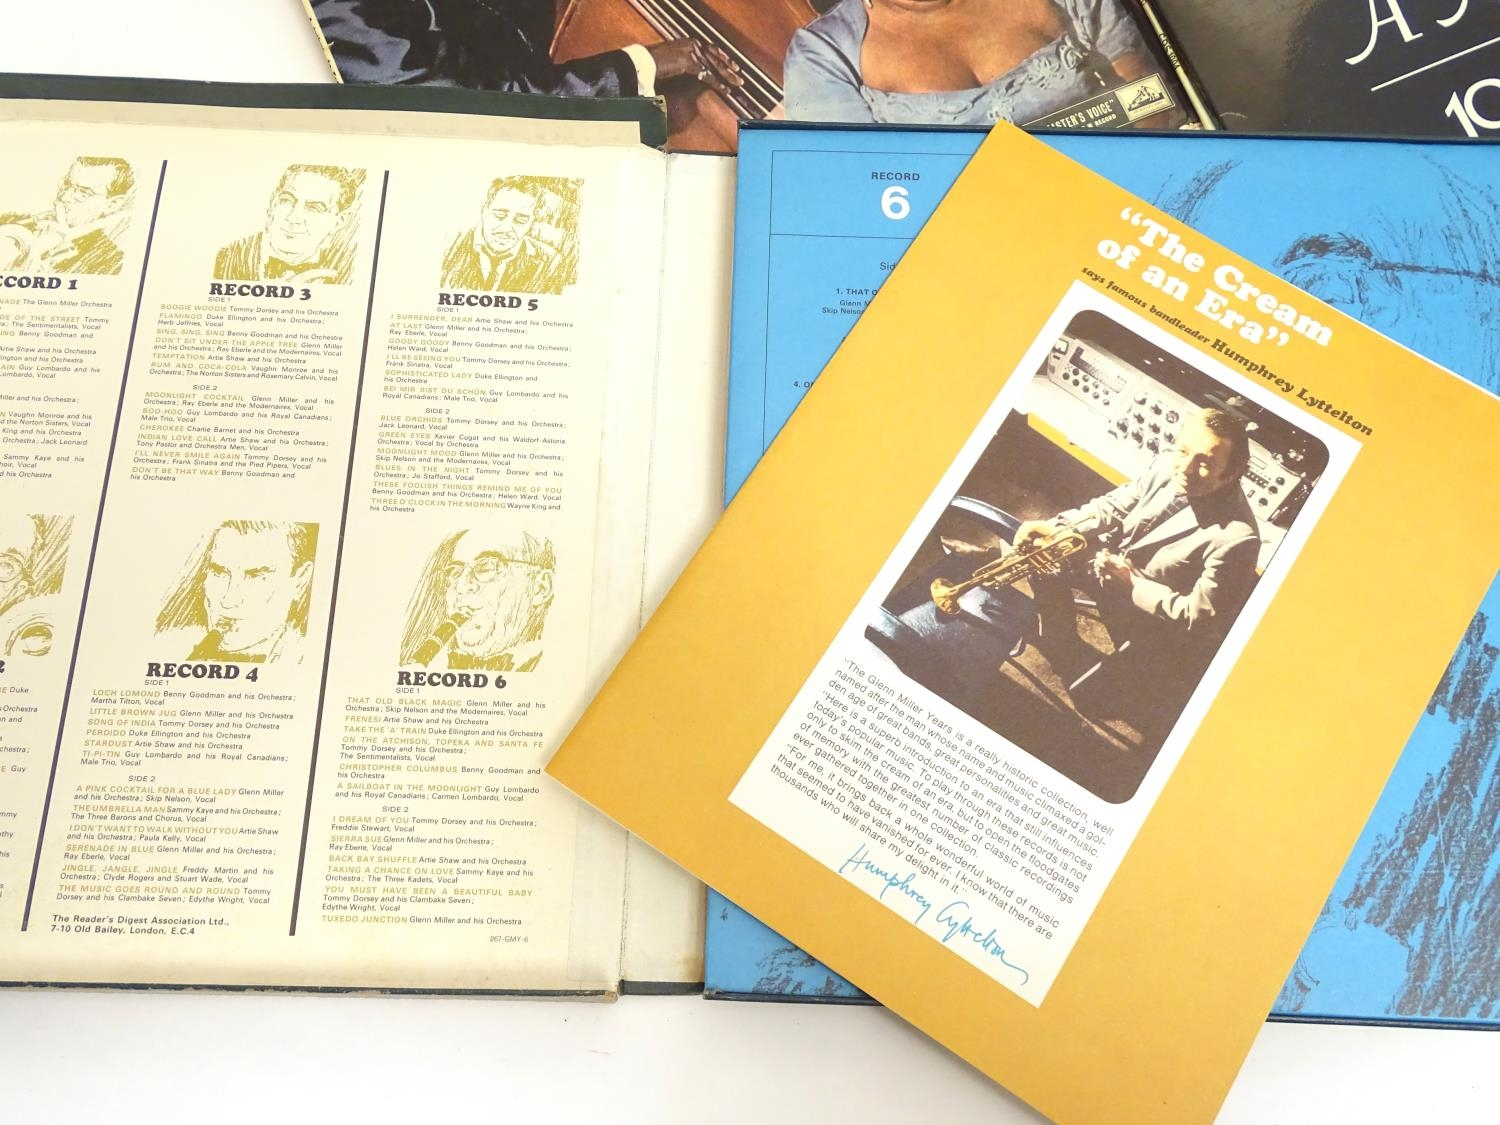 A collection of 20thC 33 rpm Vinyl records / LPs, Jazz, Big Band, Swing, comprising: Swing! (Coleman - Image 5 of 9